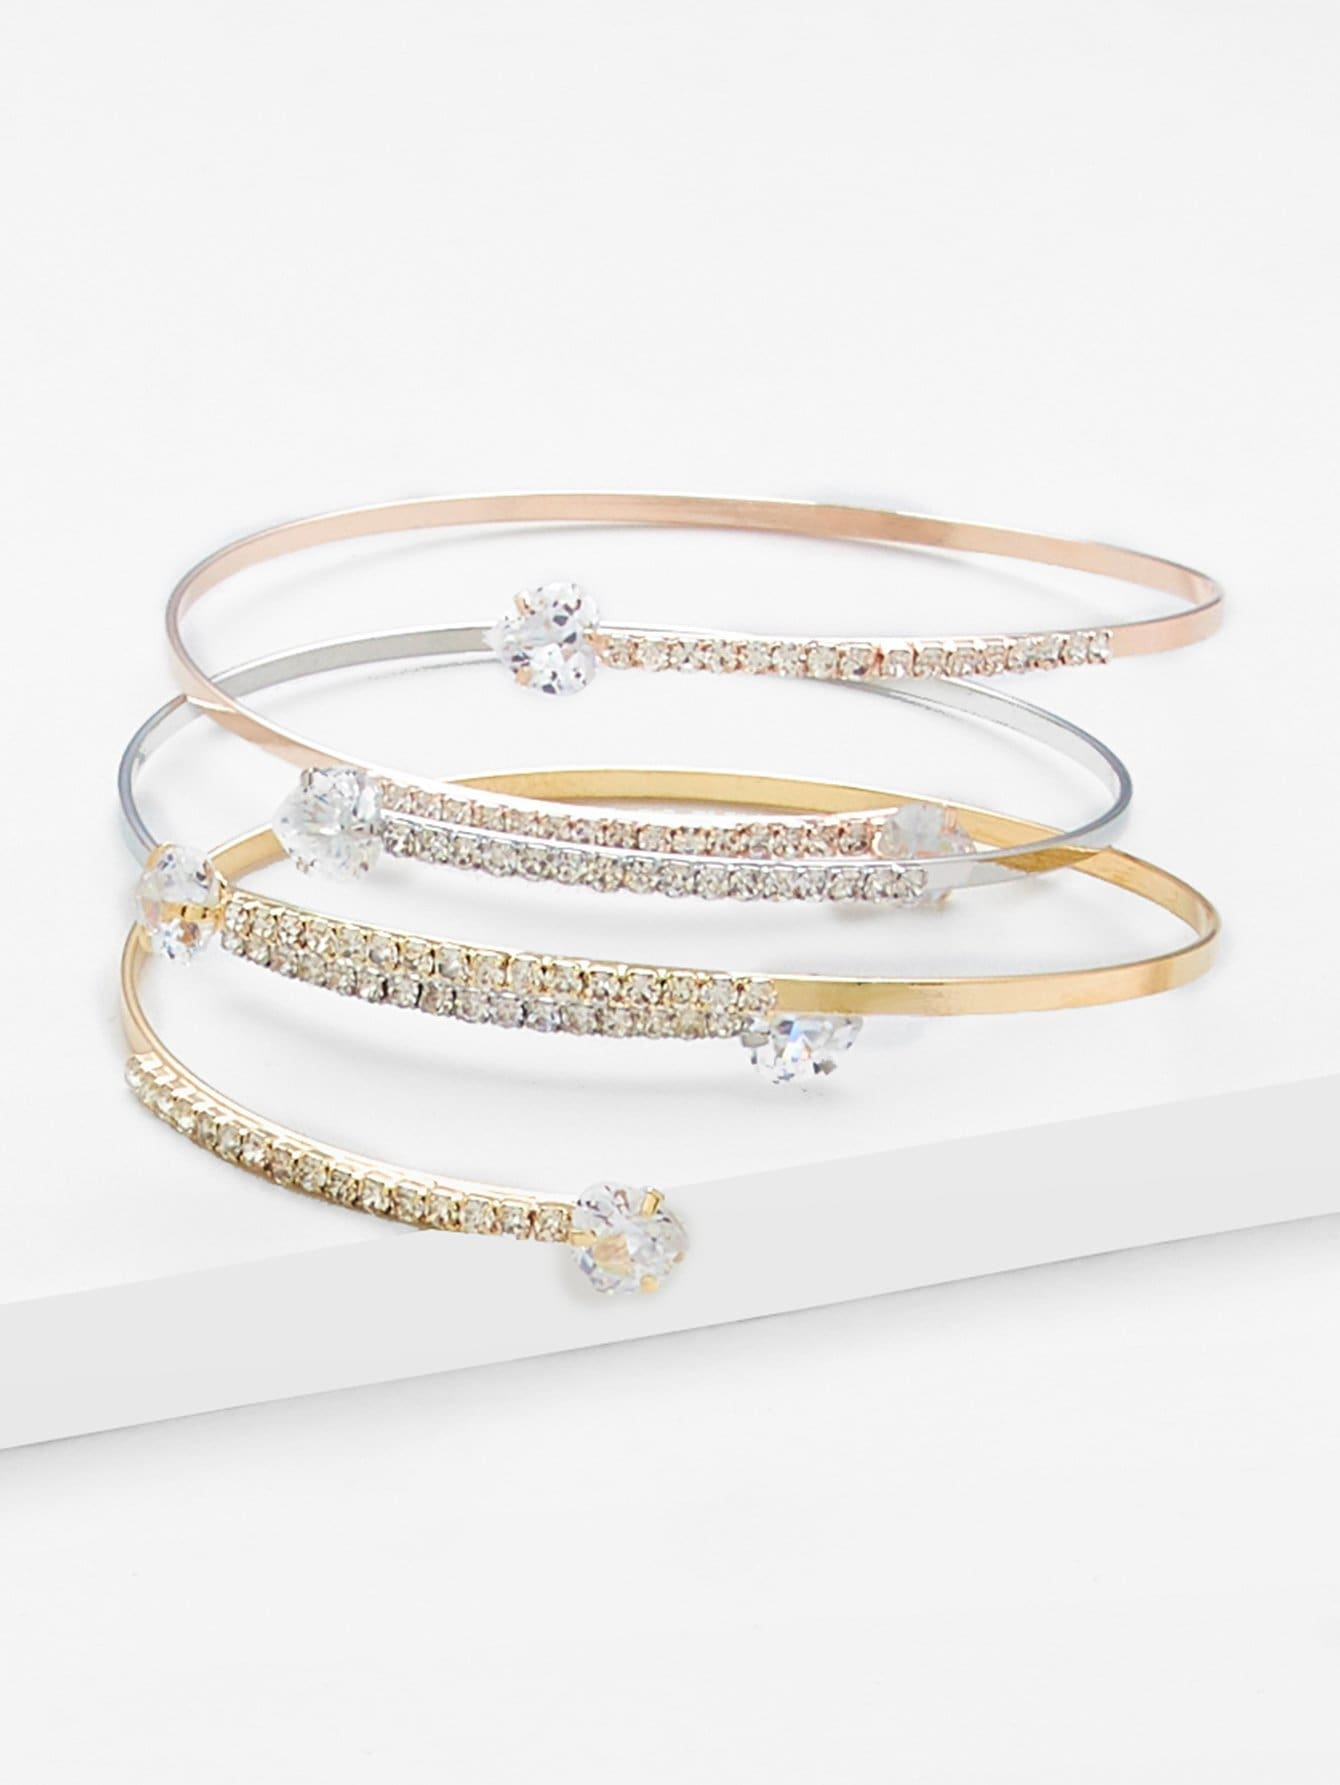 Rhinestone Wrap Festival Bangle 3pcs